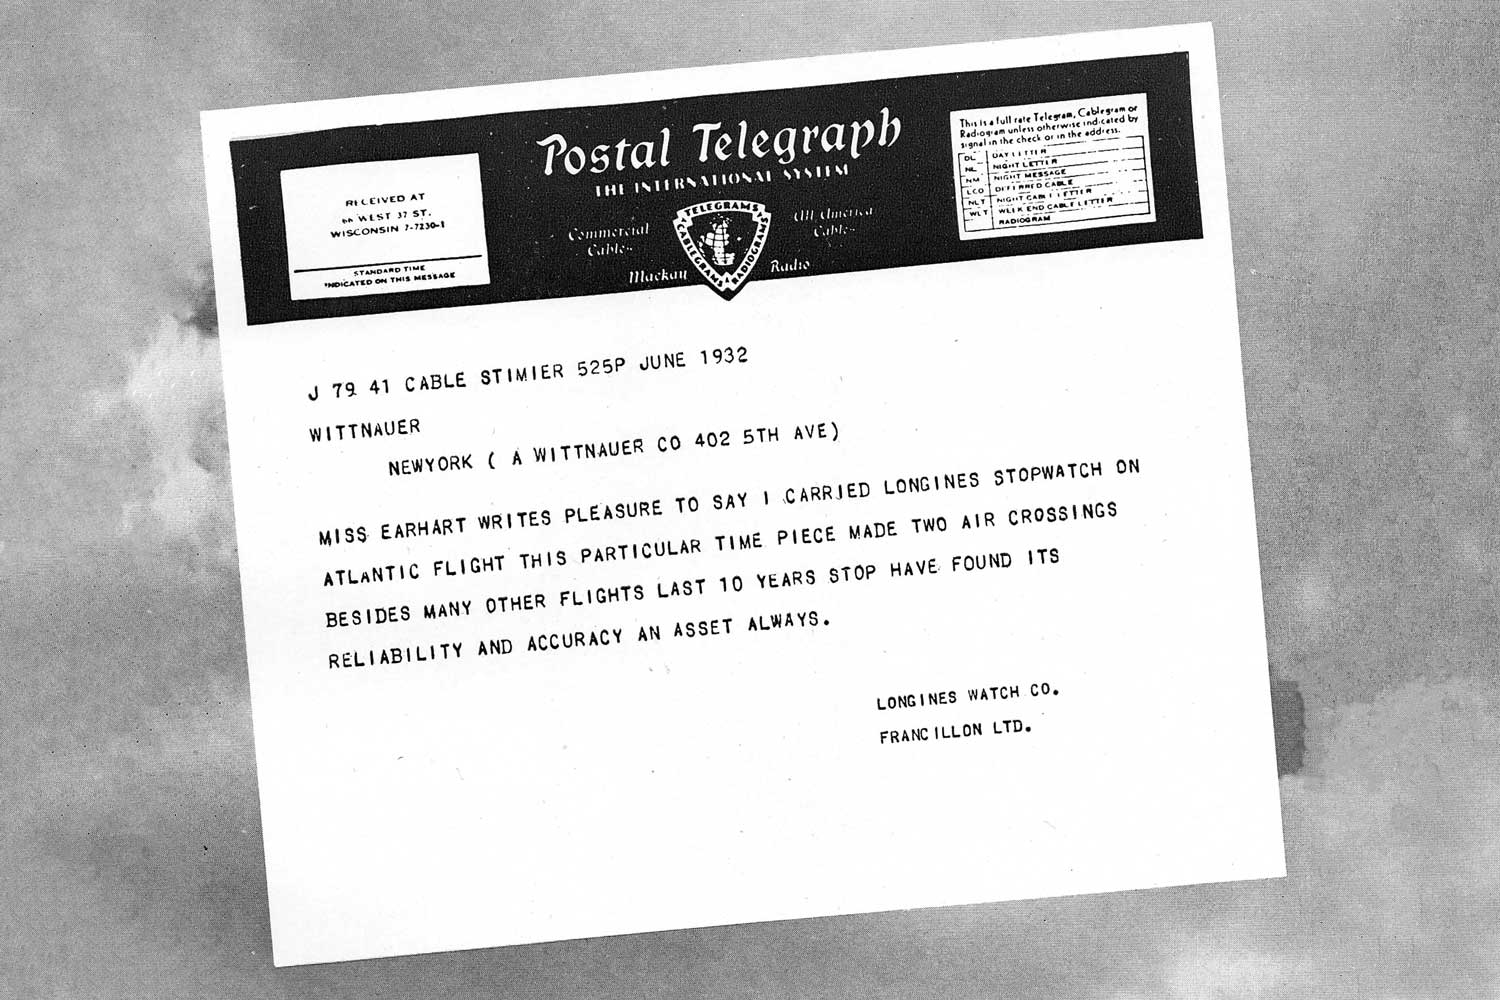 Telegram from Amelia Earhart to Longines after her solo non-stop transatlantic flight in 1932; she was wearing a Longines wristwatch